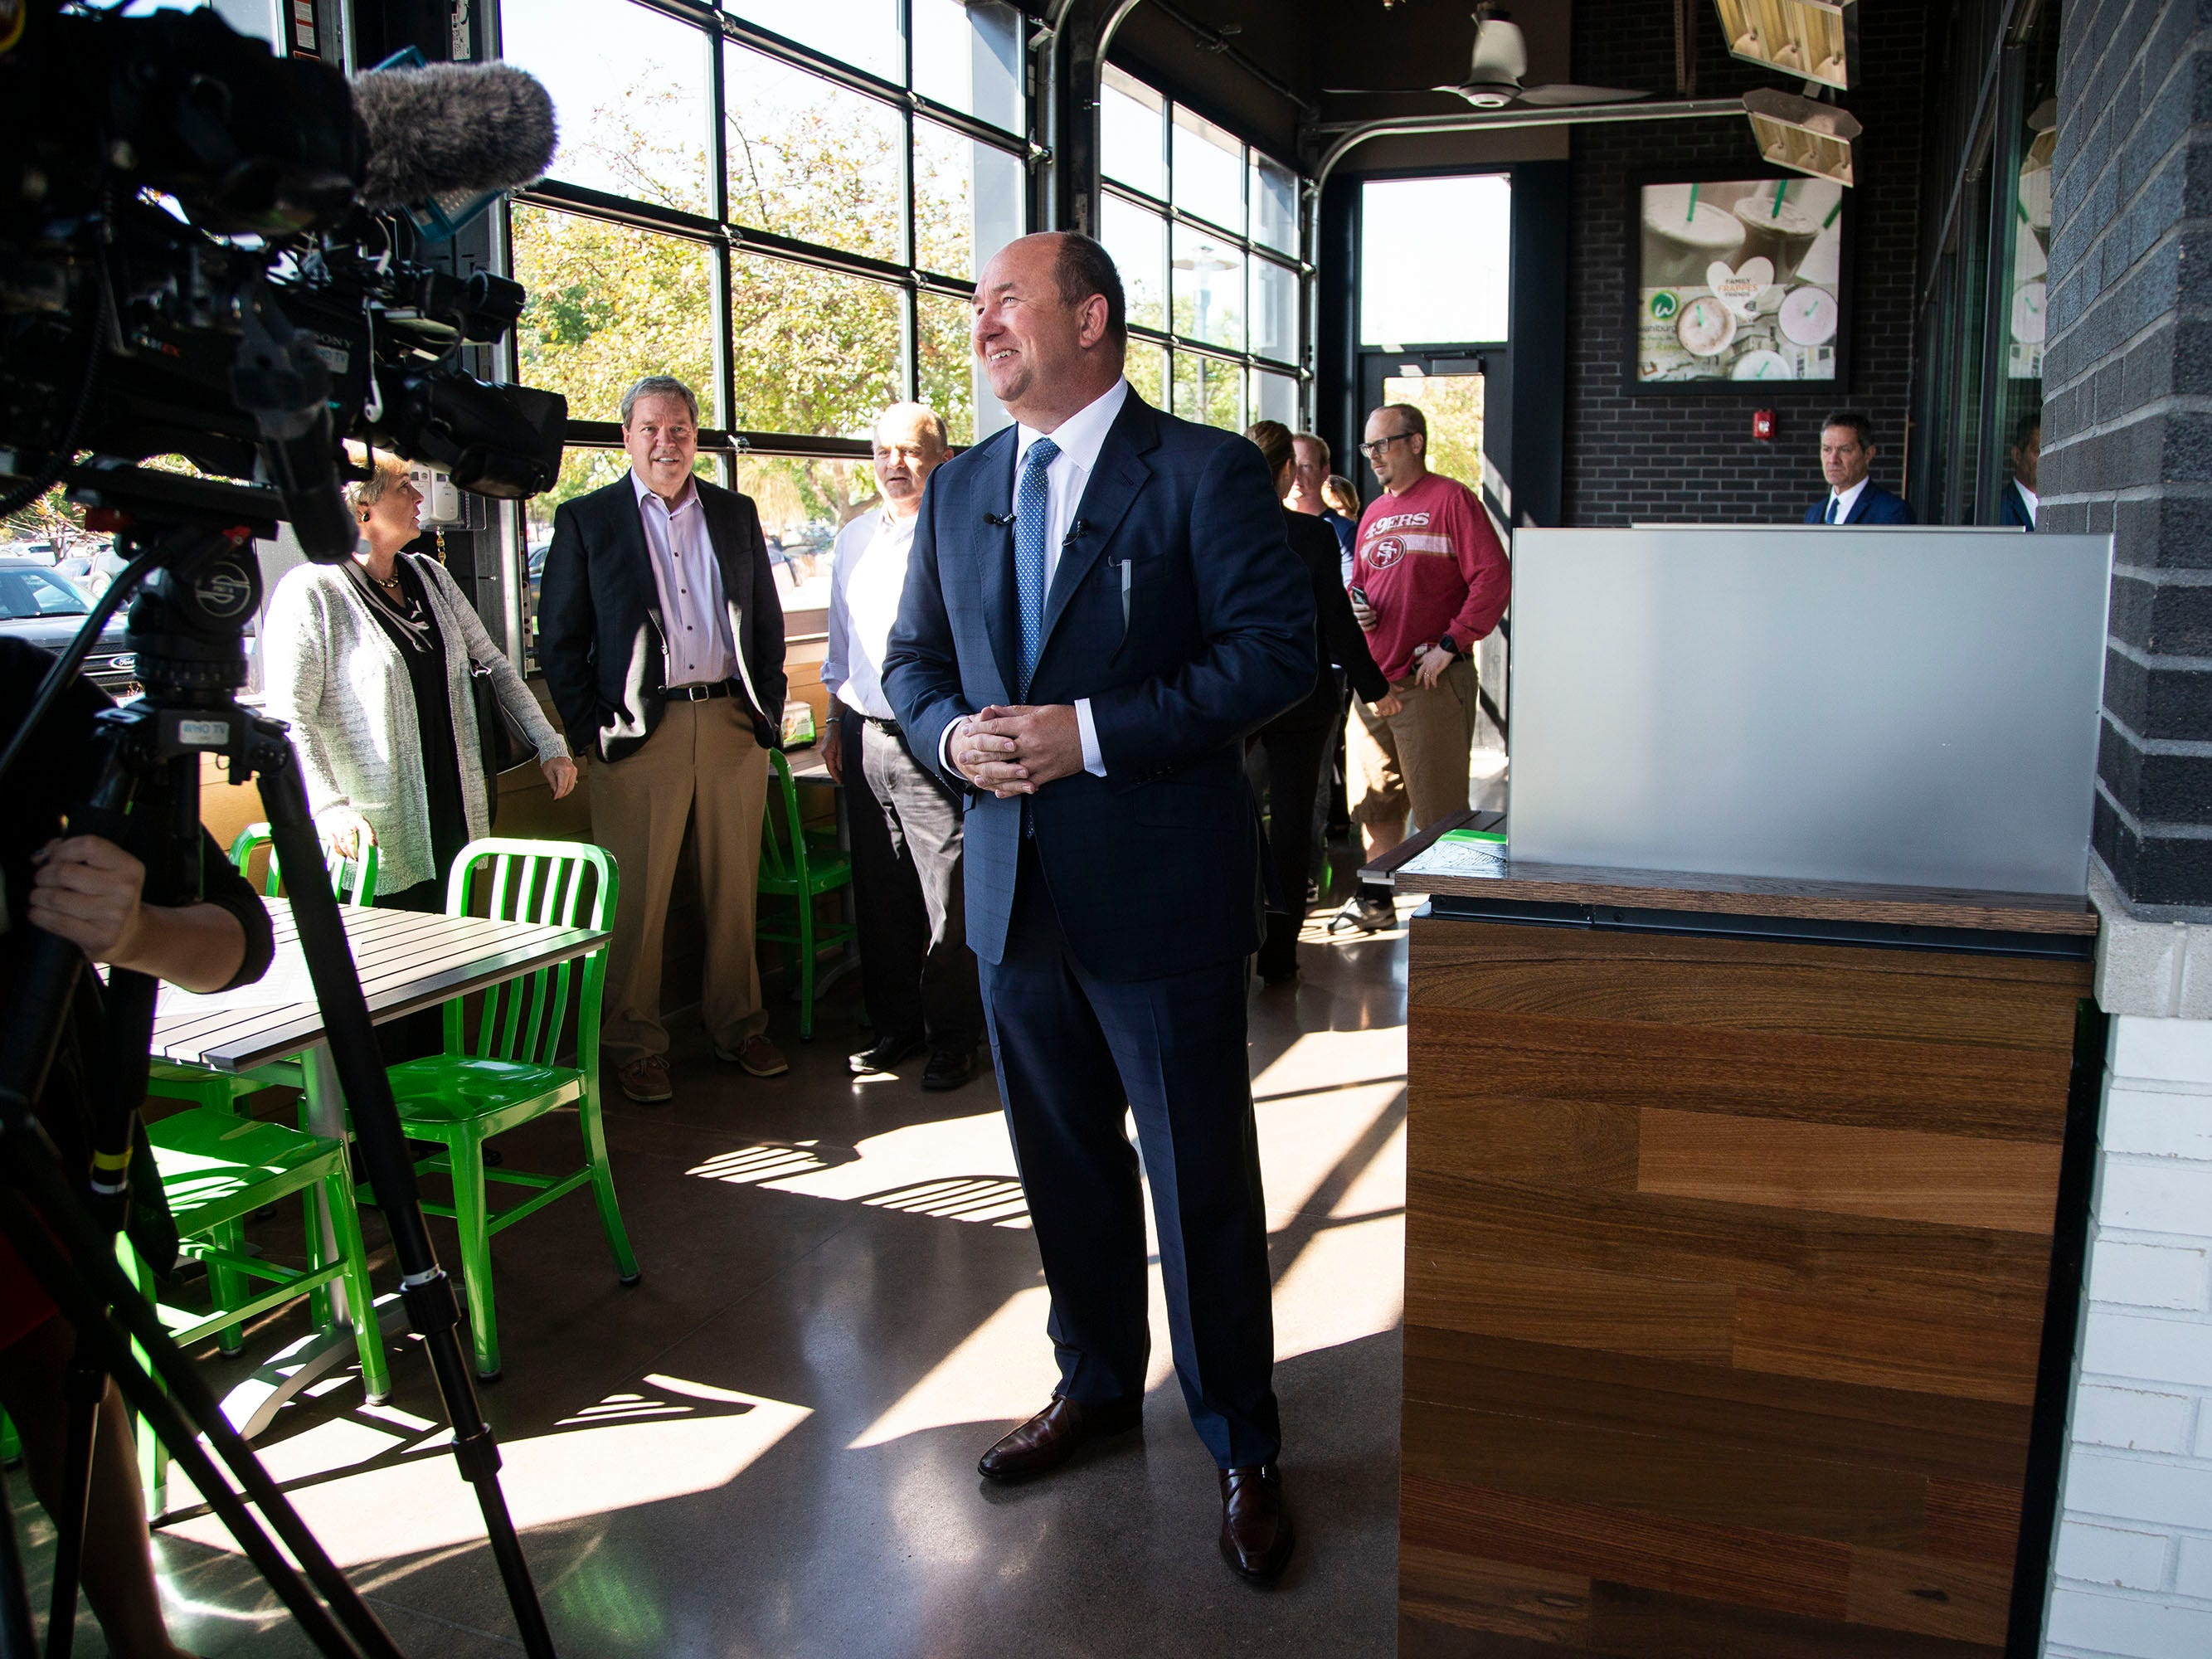 Randy Edeker, CEO of Hy-Vee talks to the media during a preview event at Iowa's first Wahlburgers location, opening this week, on Monday, Sept. 10, 2018, in the Jordan Creek Town Center in West Des Moines. This is Hy-Vee's second Wahlburgers location, the first opened in the Mall of America earlier this year.